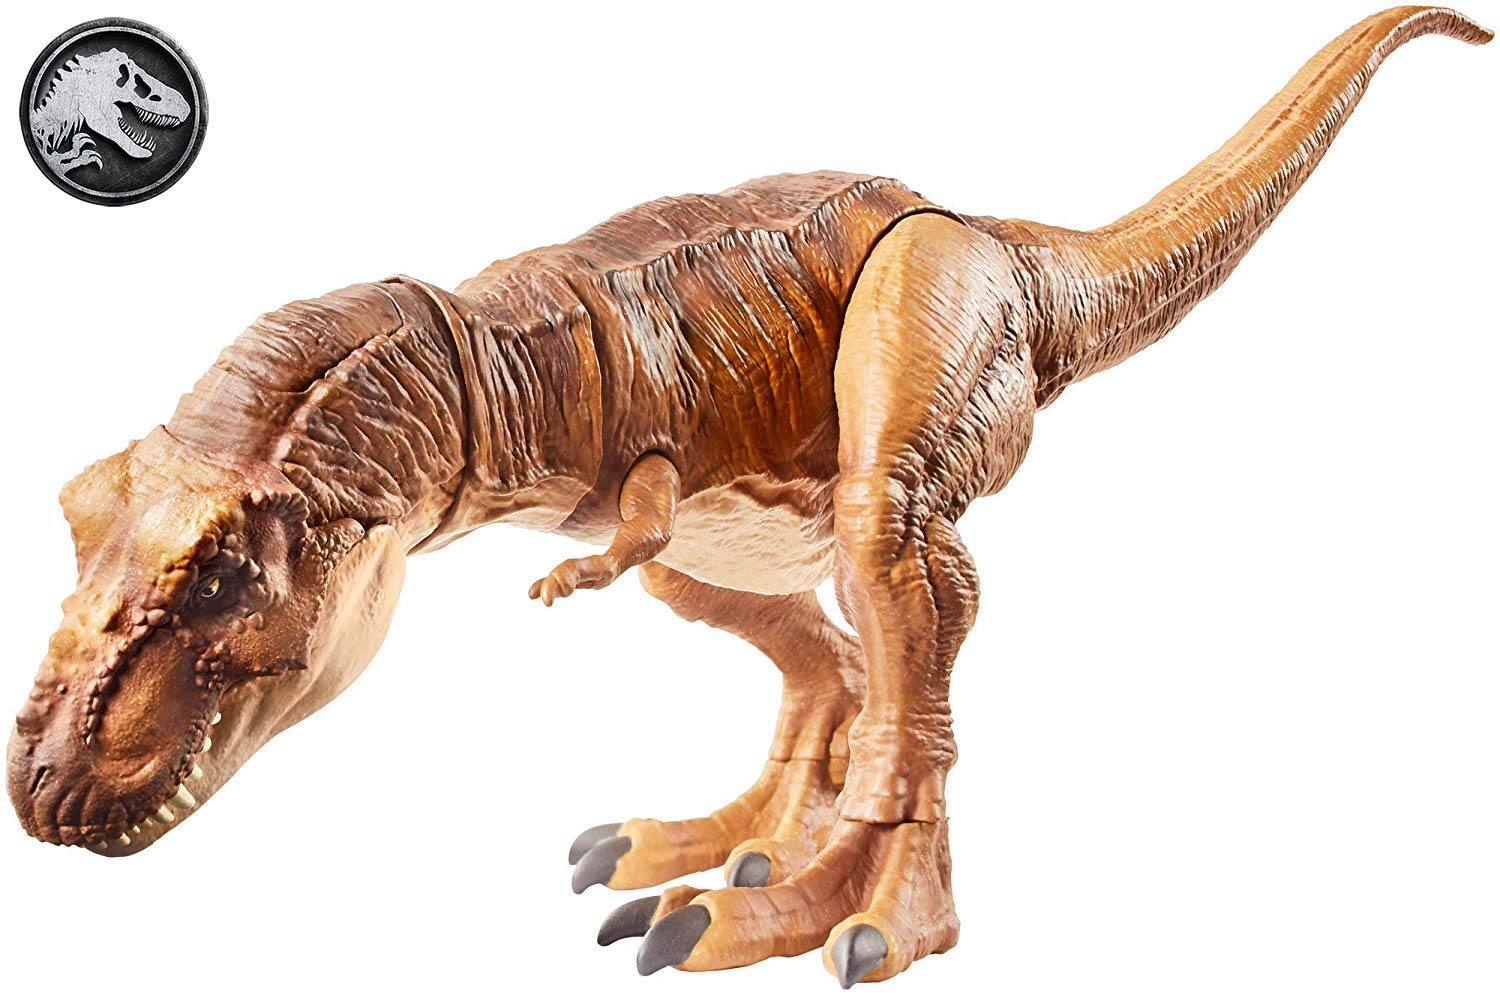 Jurassic World Legacy Collection Extreme Chompin' Tyrannosaurus Rex by Mattel